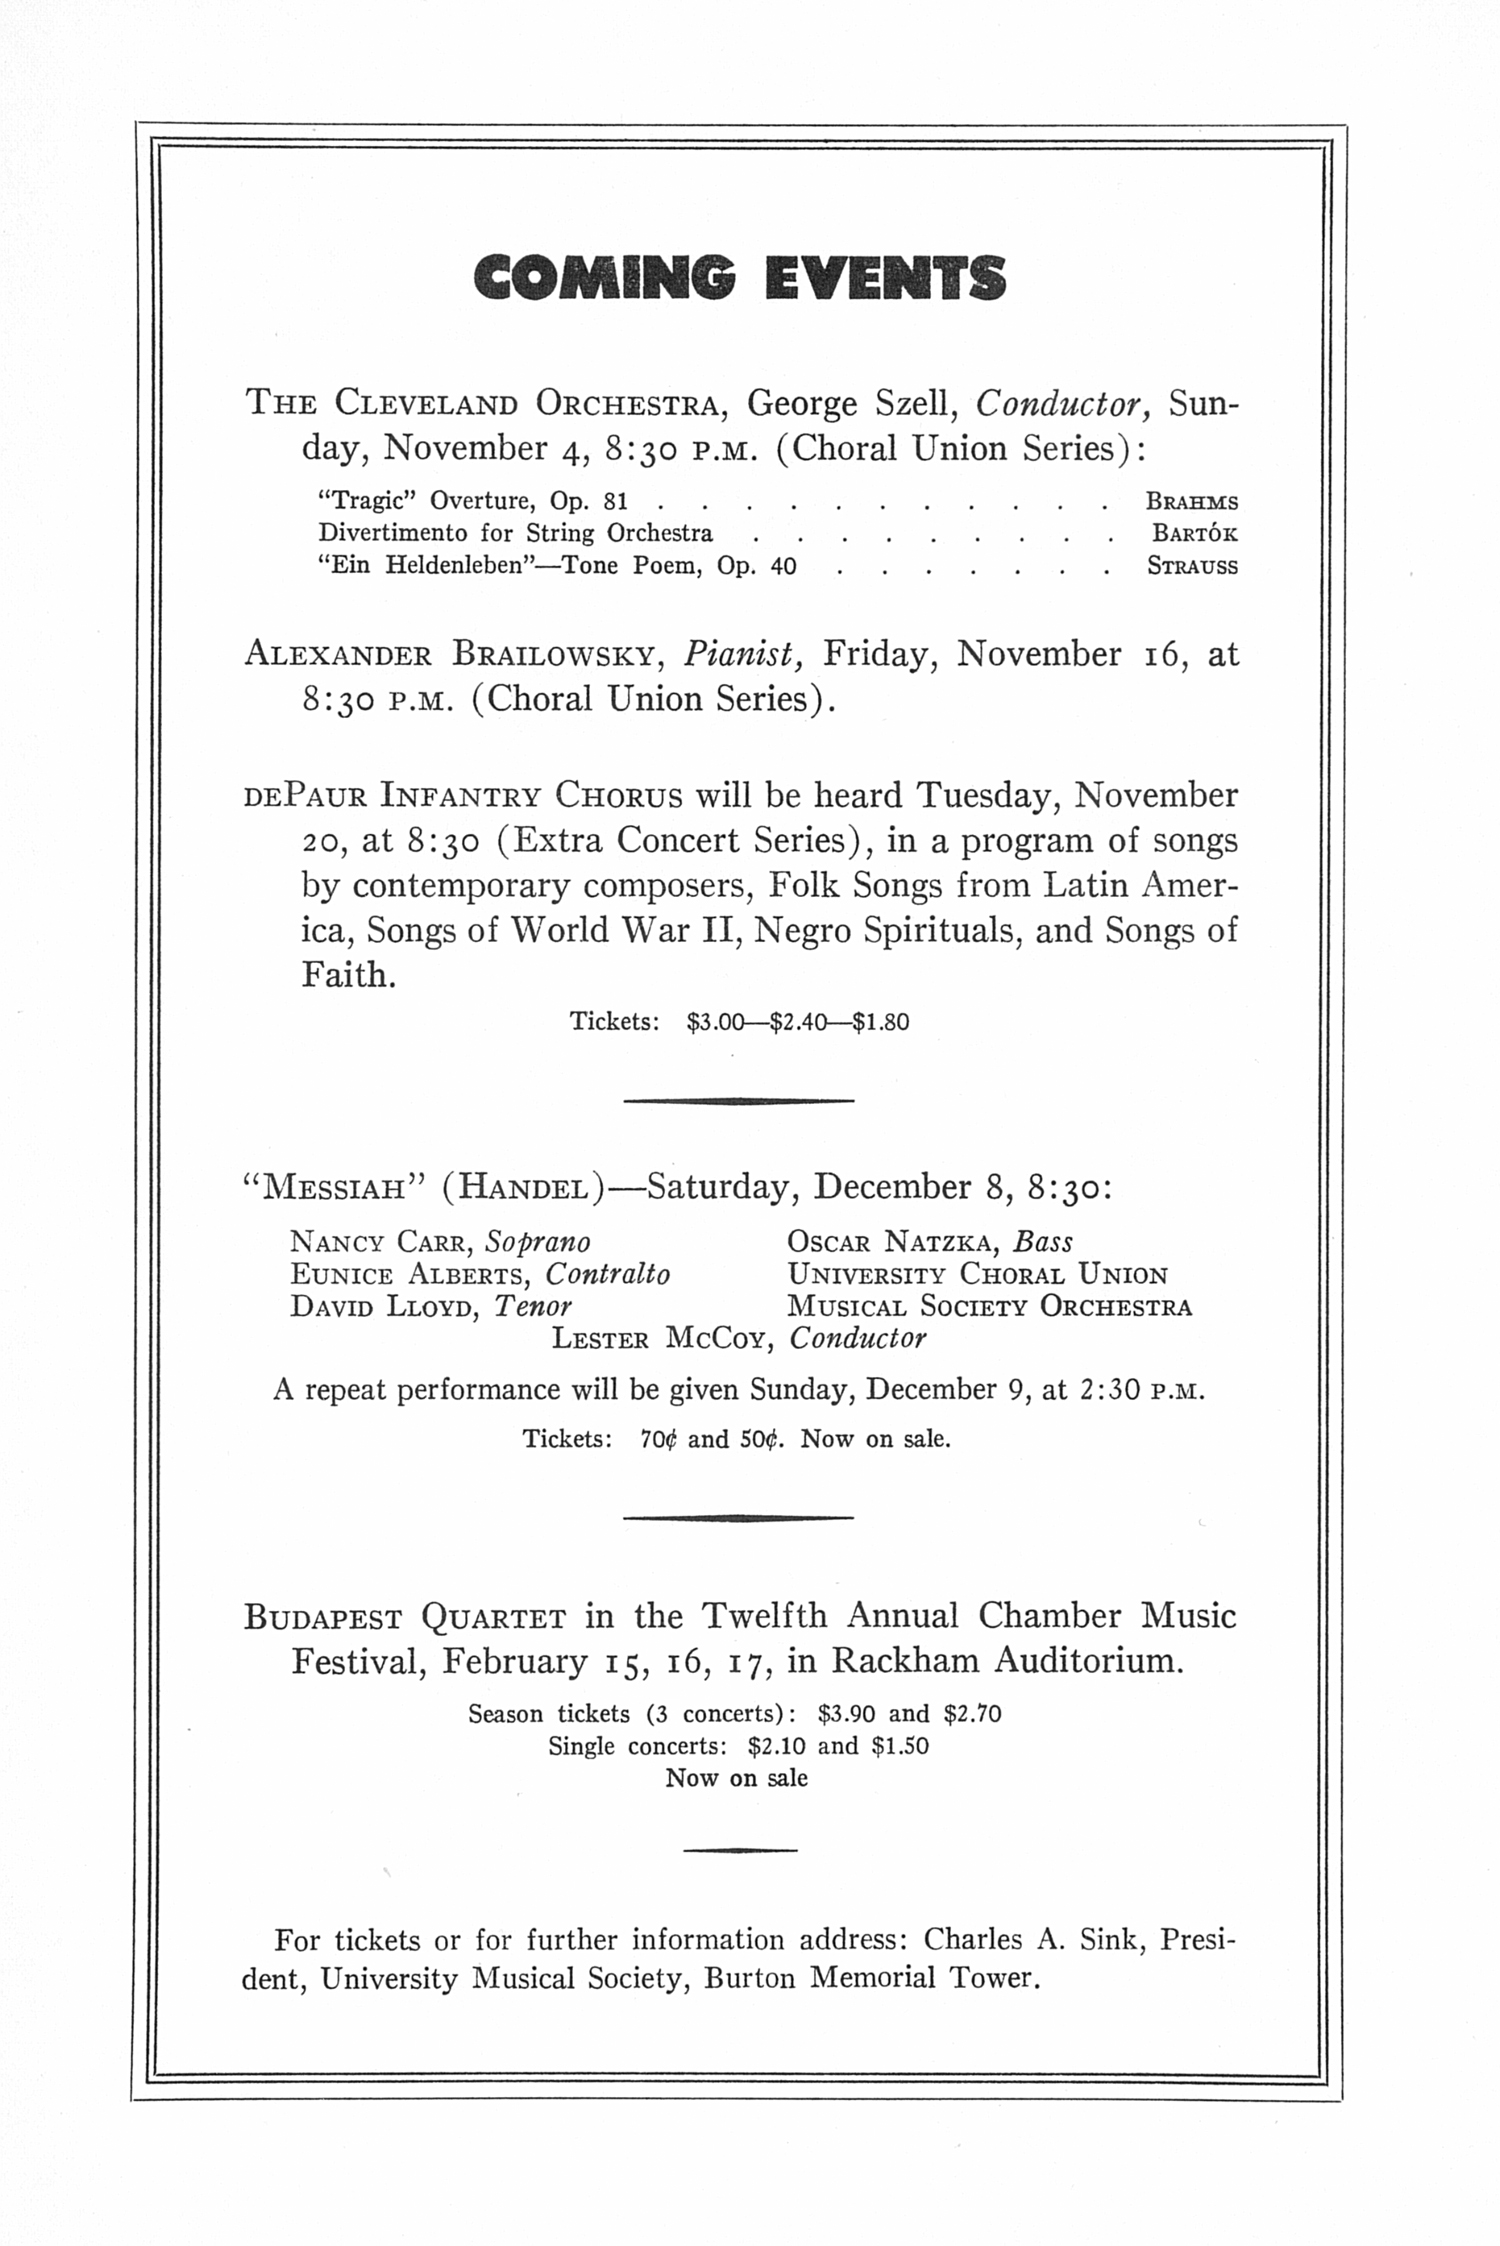 UMS Concert Program, October 22, 1951: Sixth Annual Extra Concert Series -- Boston Symphony Orchestra image